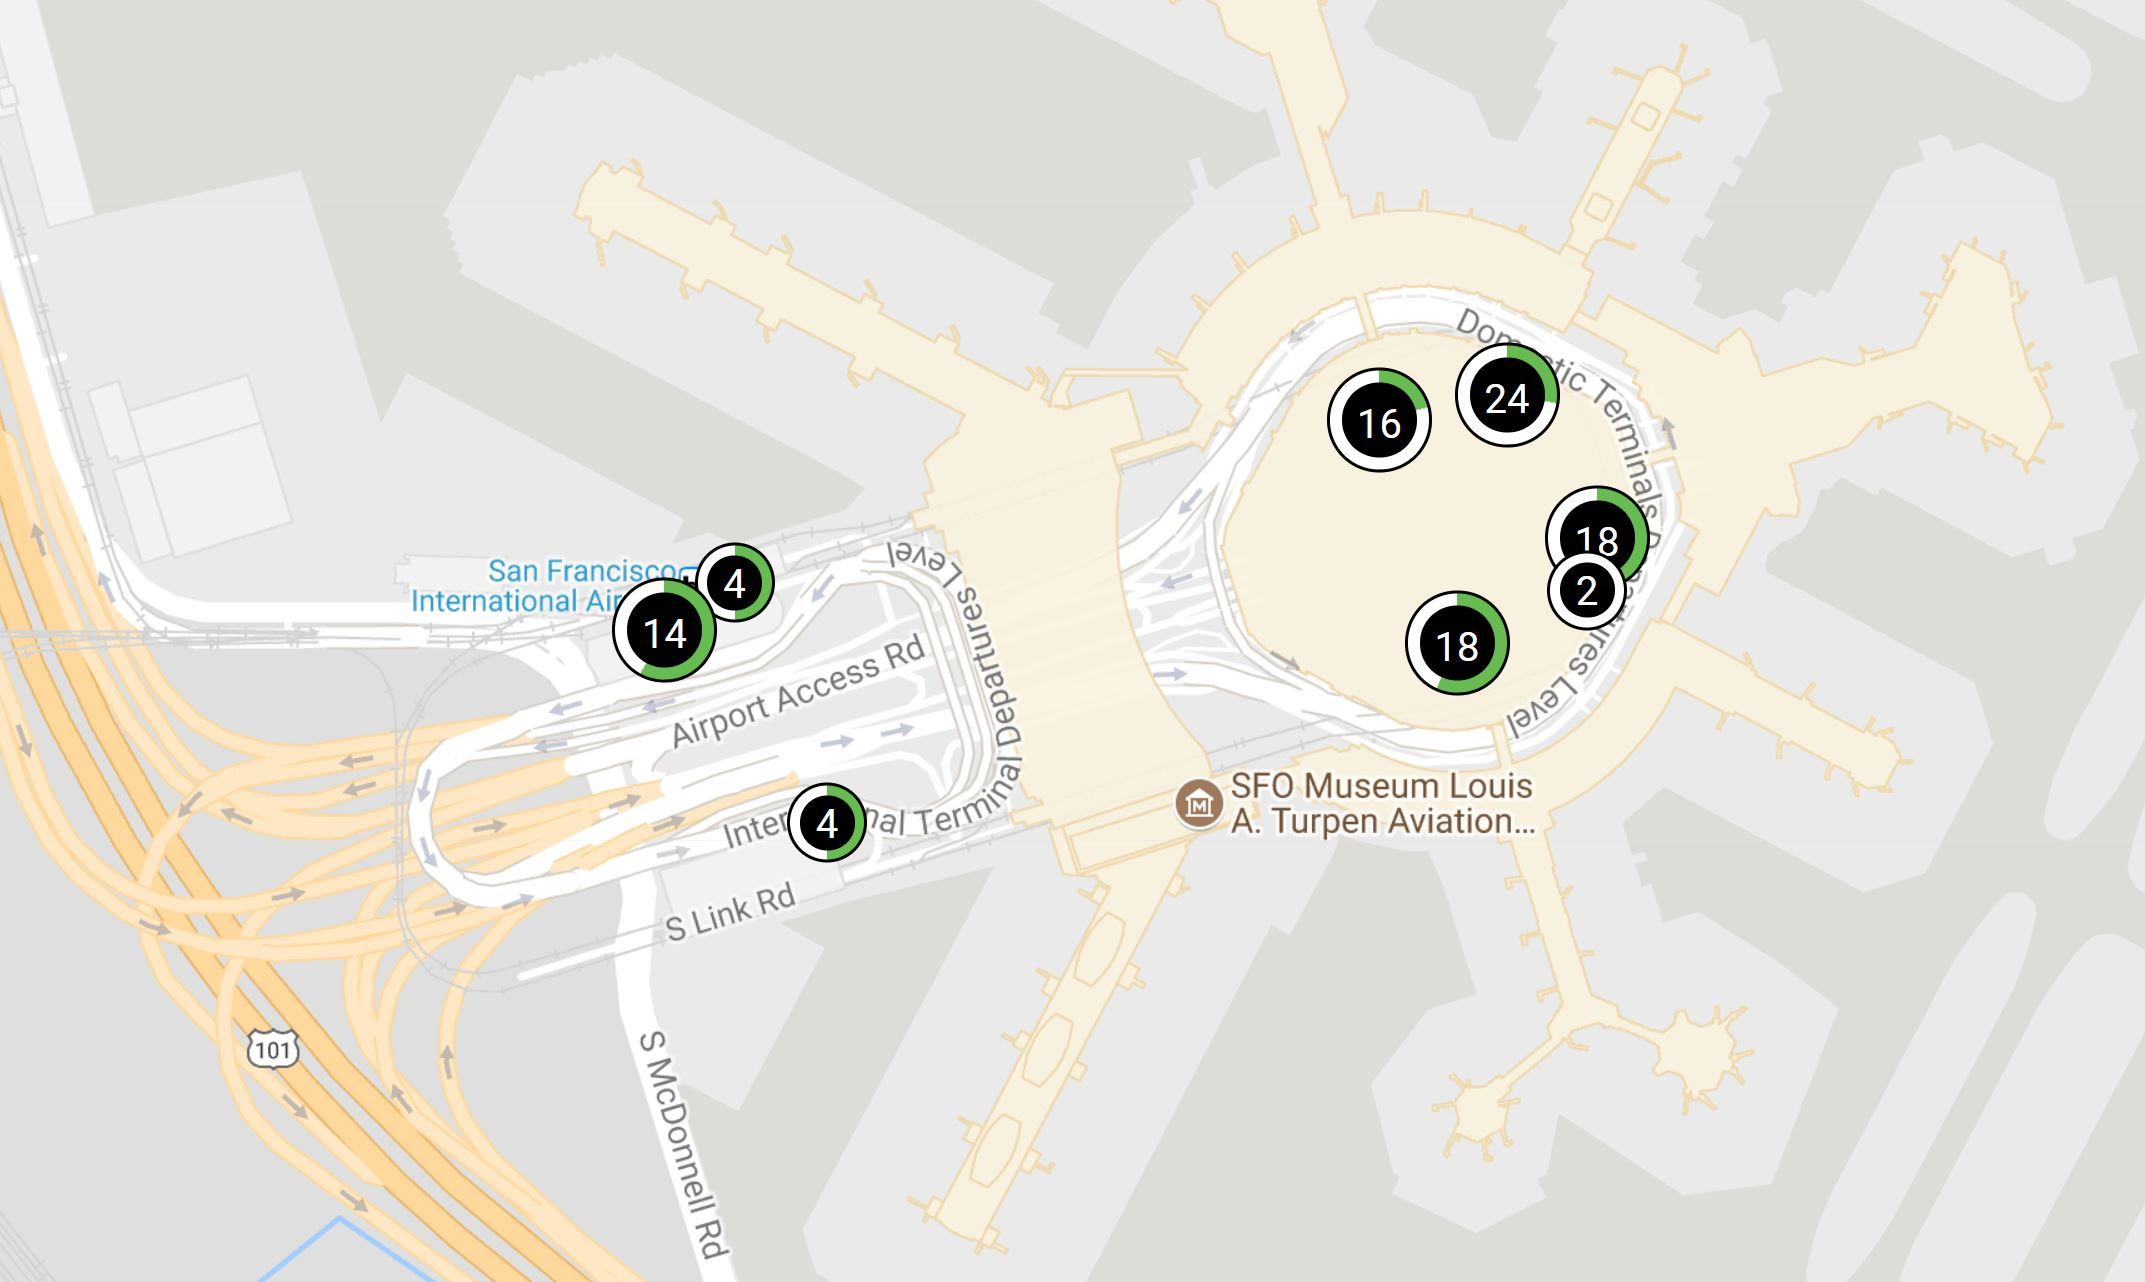 Free Electric Vehicle charging at SFO while Parking